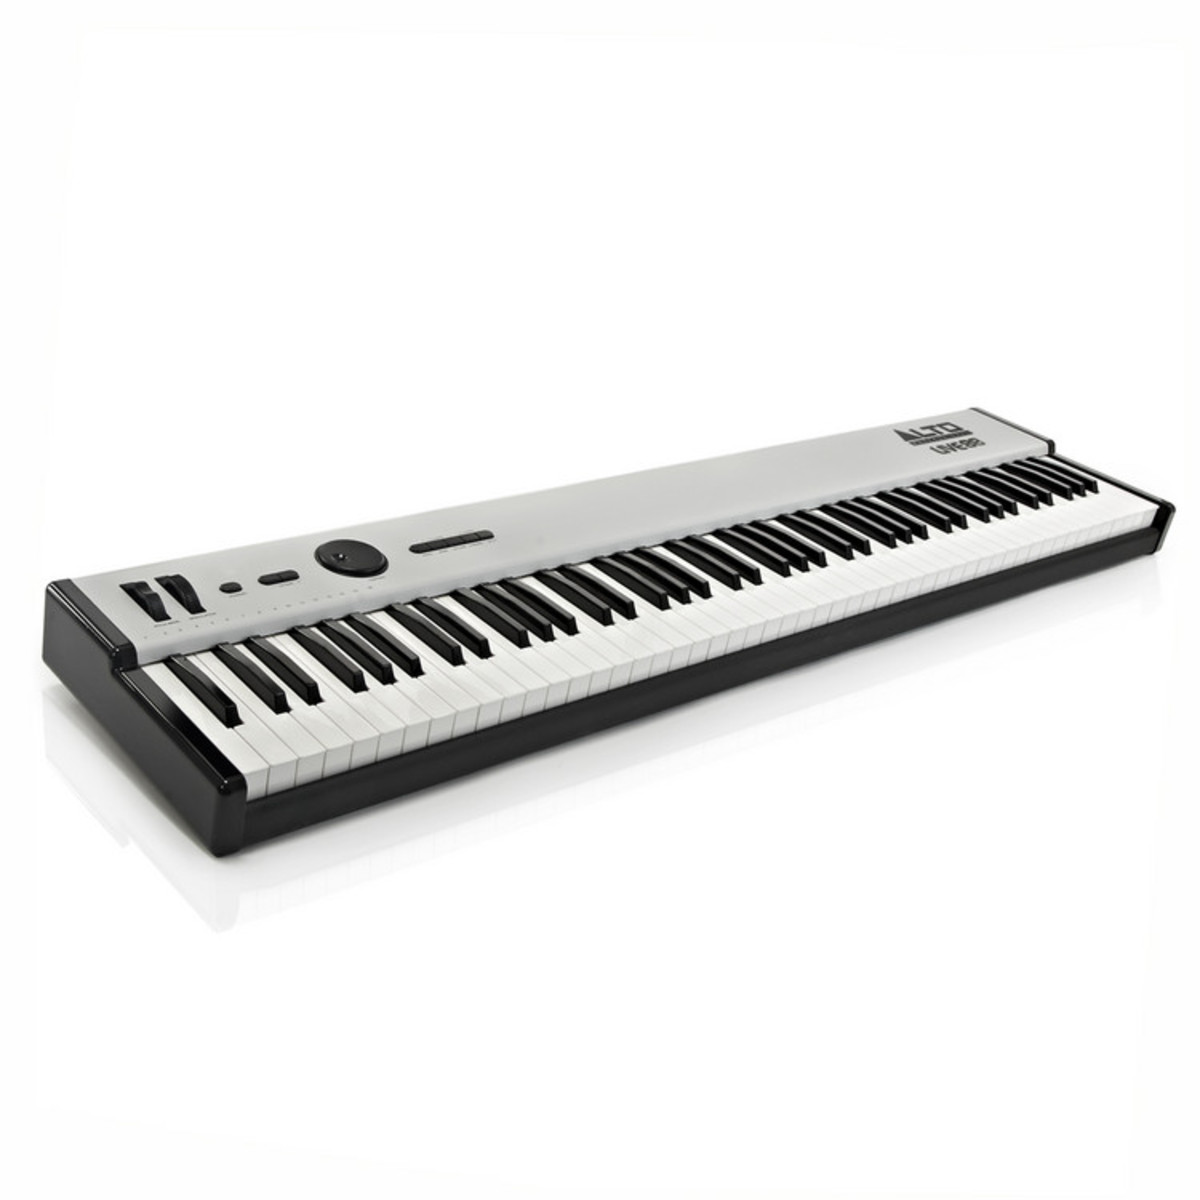 alto live 88 key midi performance controller keyboard nearly new at gear4music. Black Bedroom Furniture Sets. Home Design Ideas